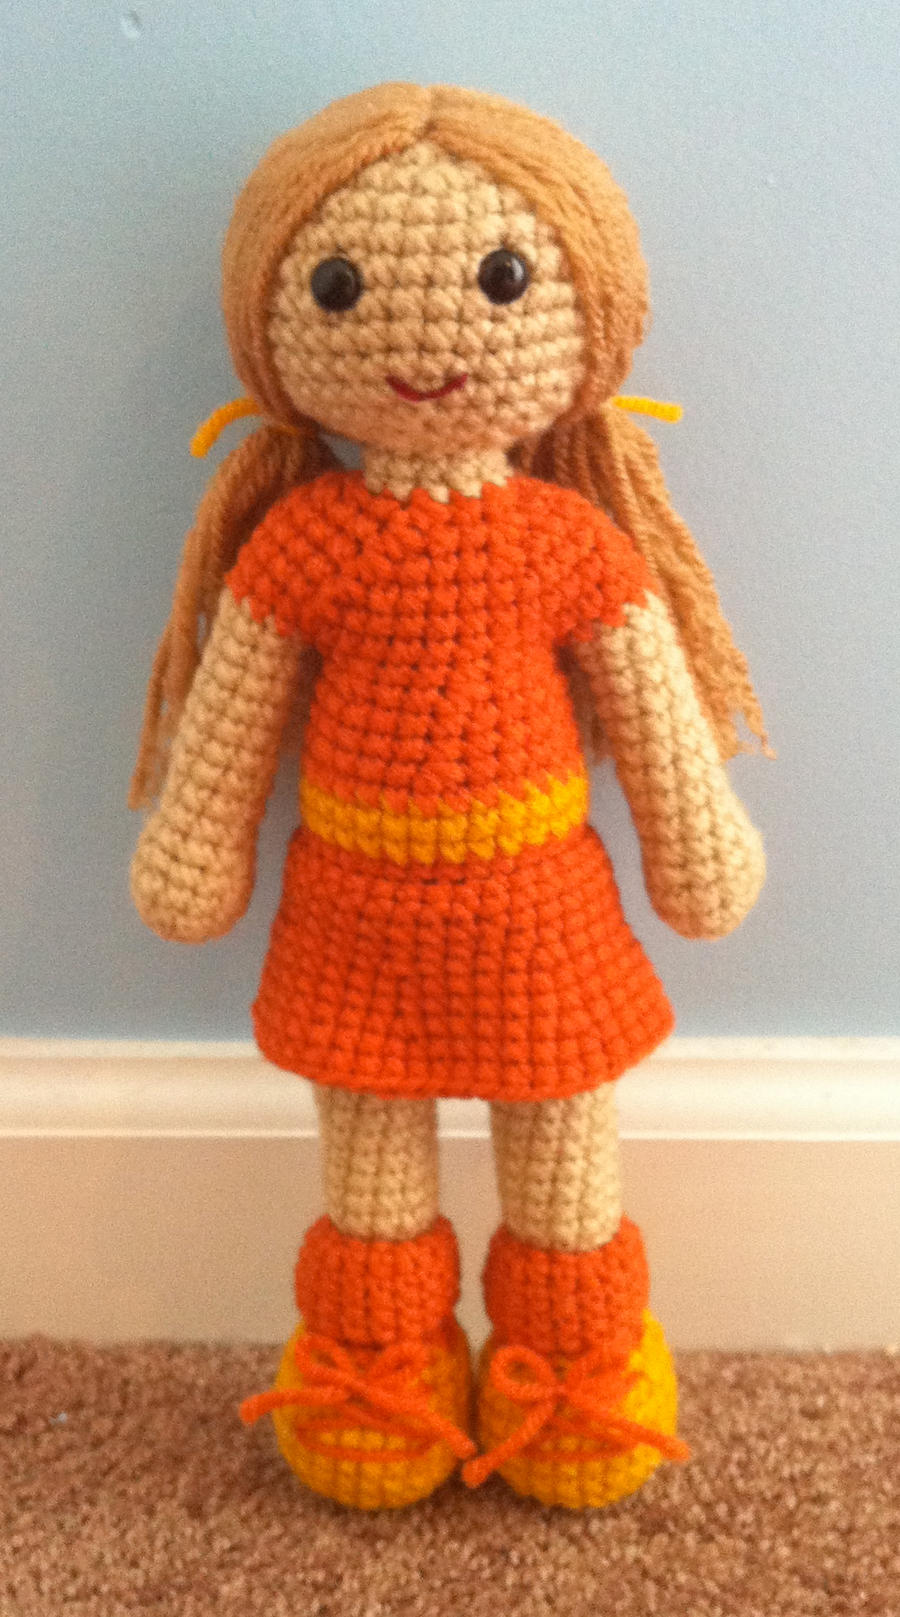 Amigurumi Doll How To : Amigurumi doll by theartisansnook on deviantart